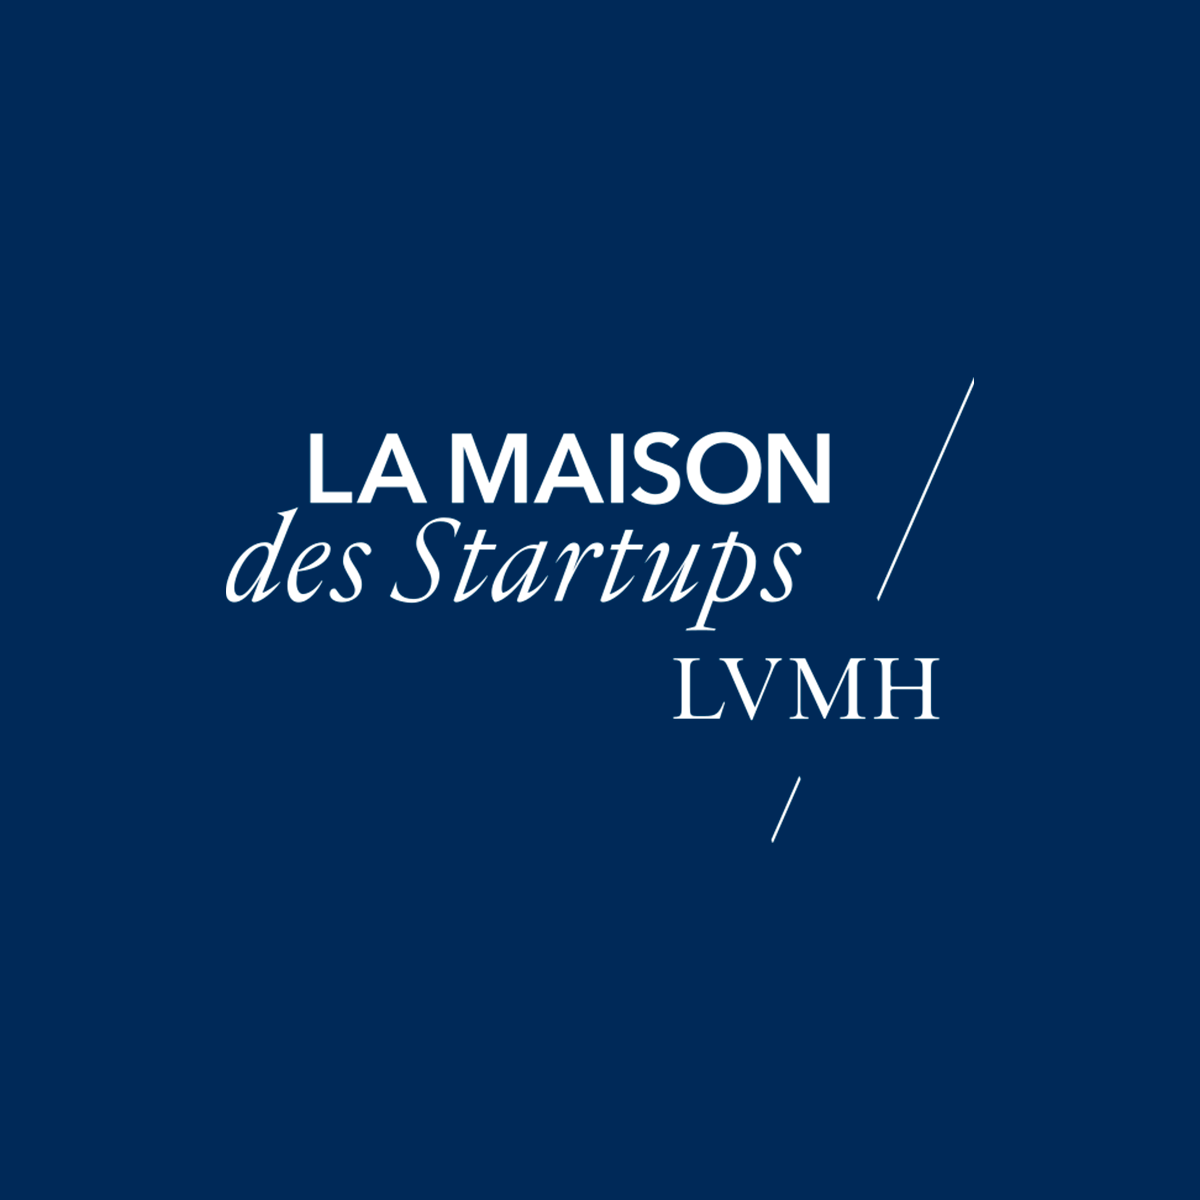 Bambuser Joins La Maison des Startups LVMH, Growing Collaboration with World's Largest Luxury Goods Conglomerate